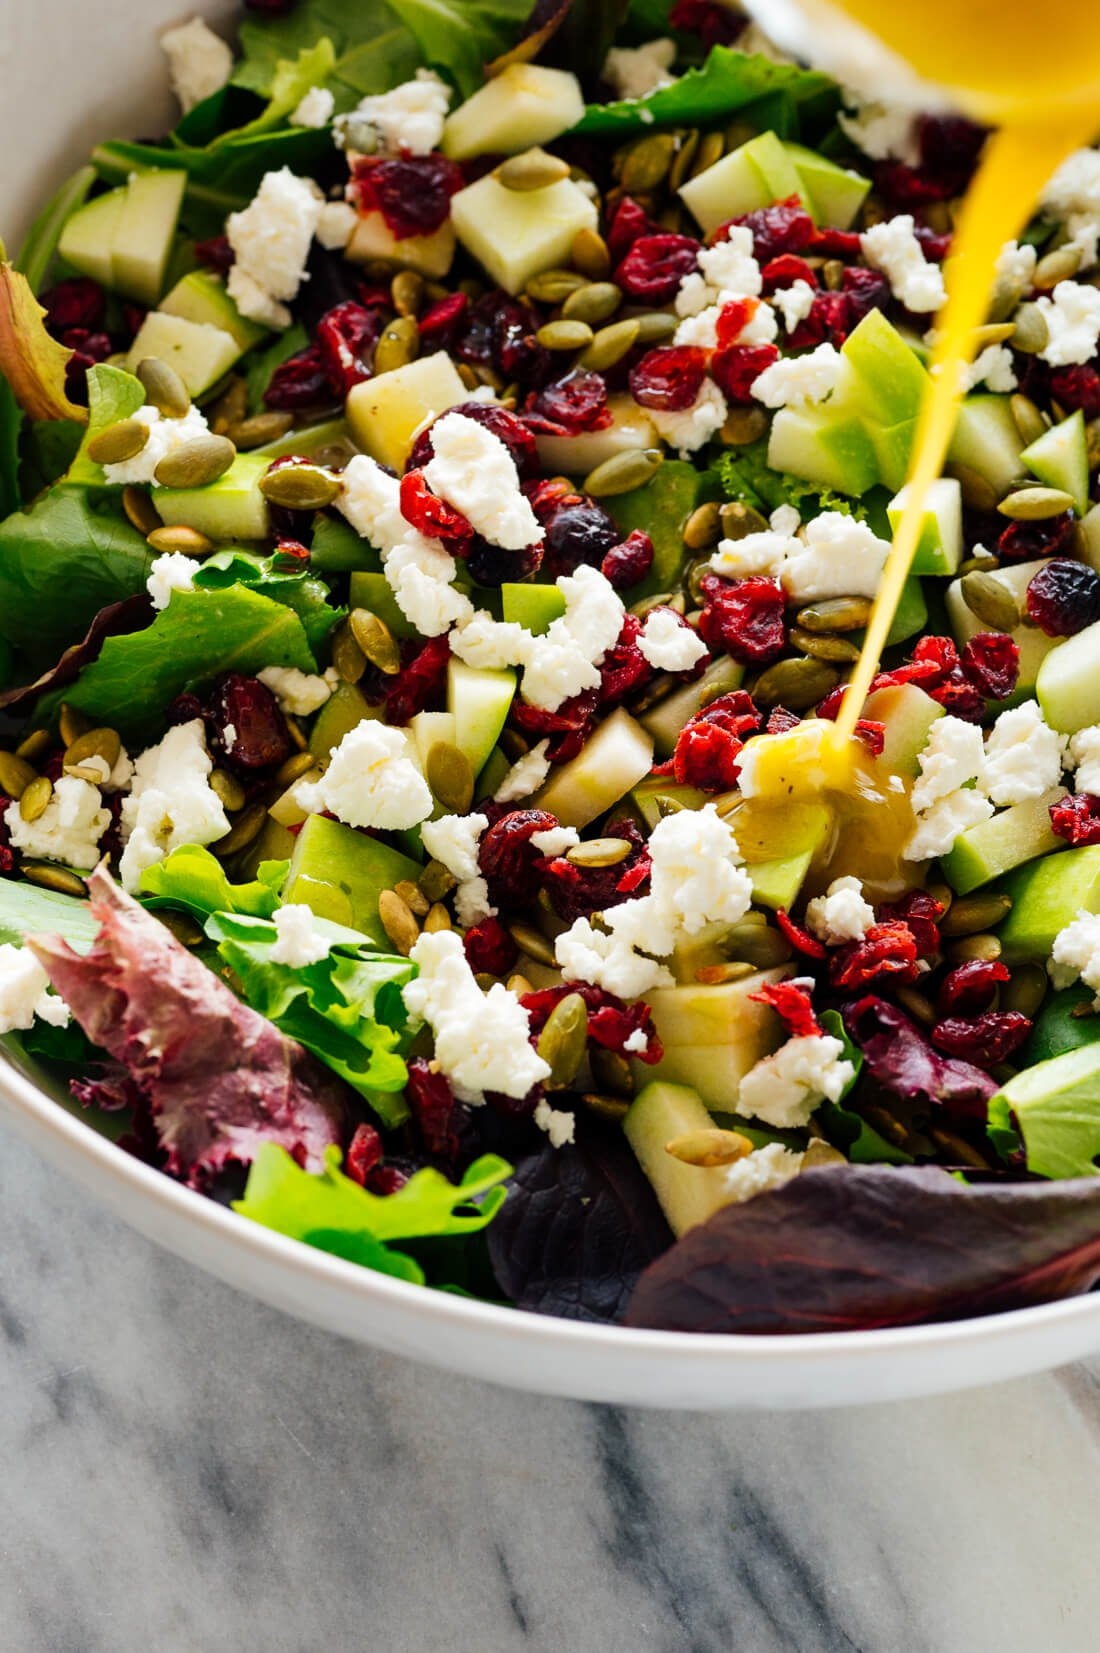 Green Salad with Apples, Cranberries, and Pepitas